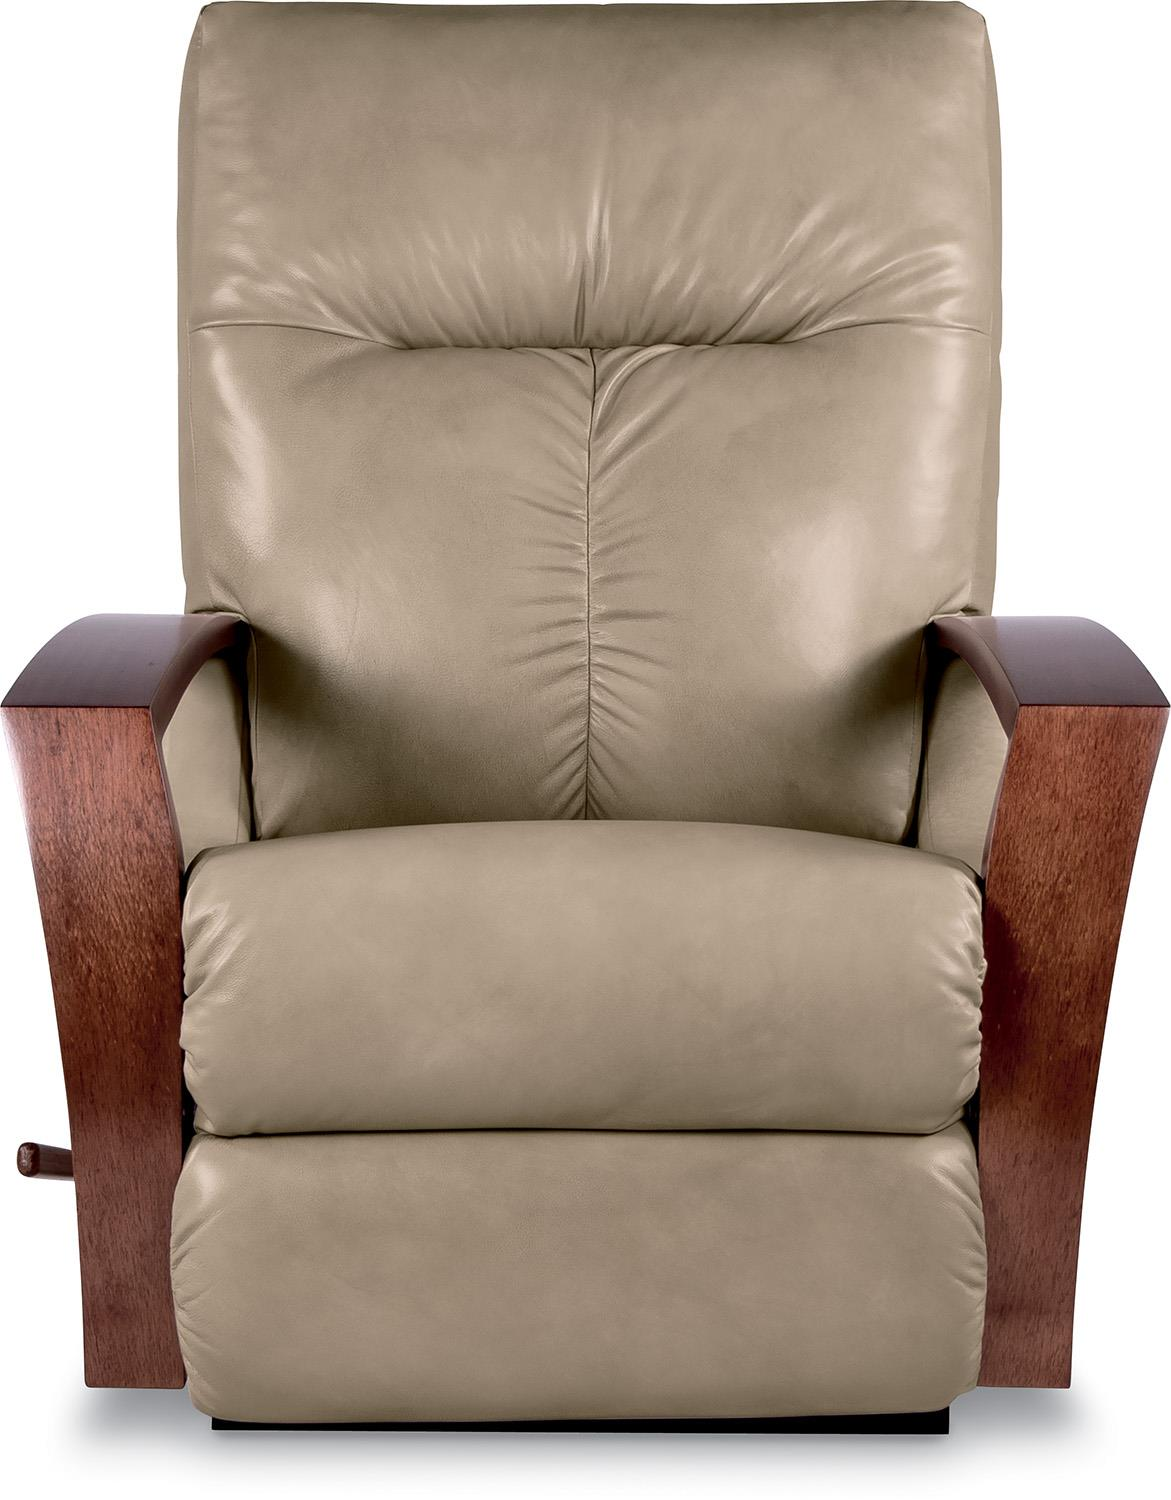 Z Chairs Sale La Z Boy Recliners Sale Bing Images